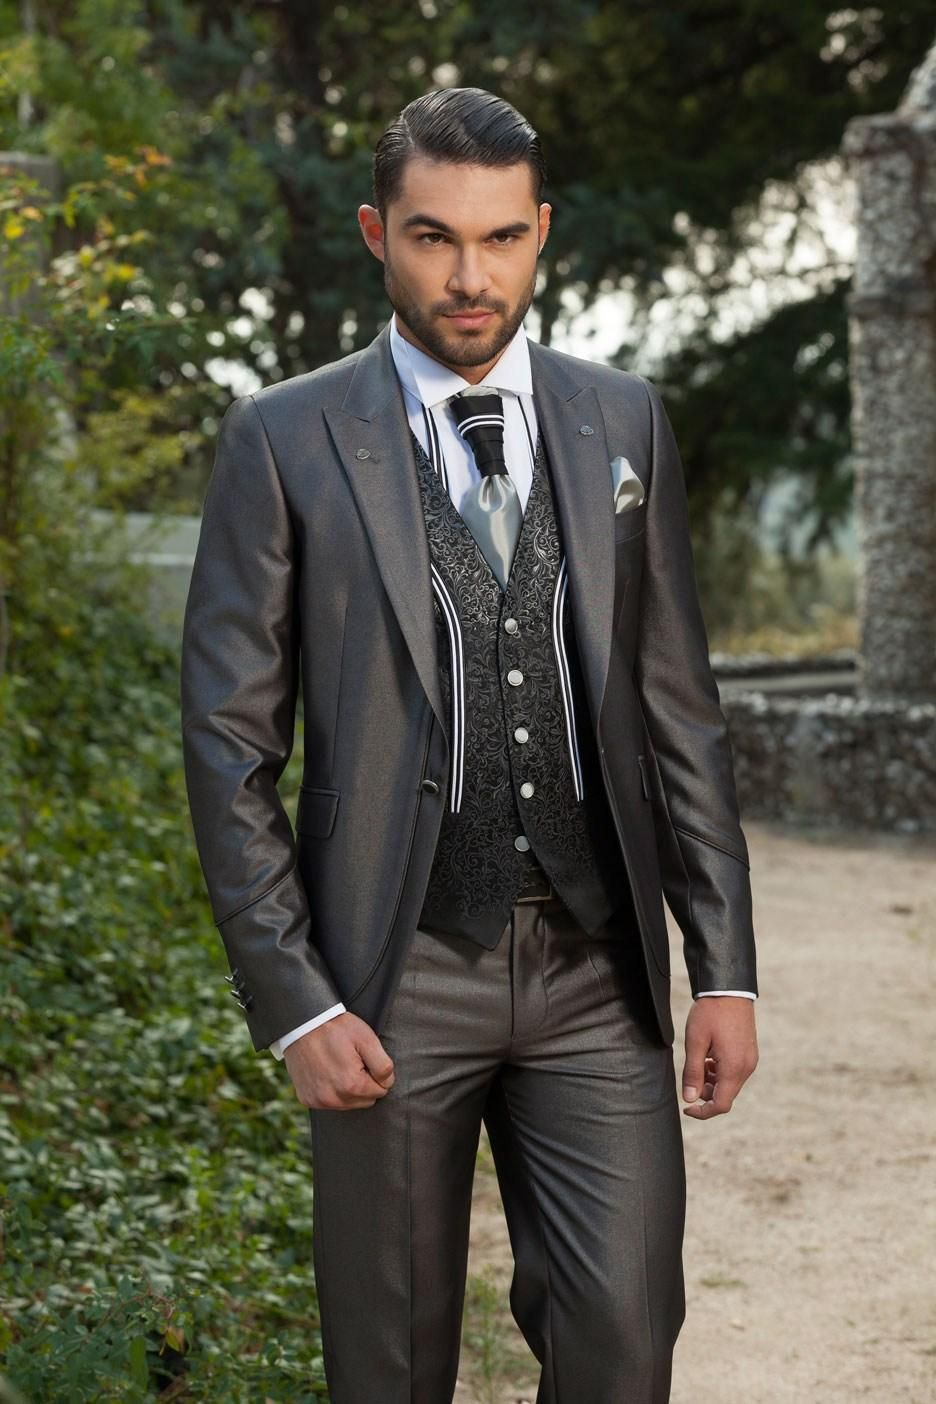 Find More Suits Information About New Slim Fit Groom Tuxedos Shiny Grey Best Groomsman Wedding